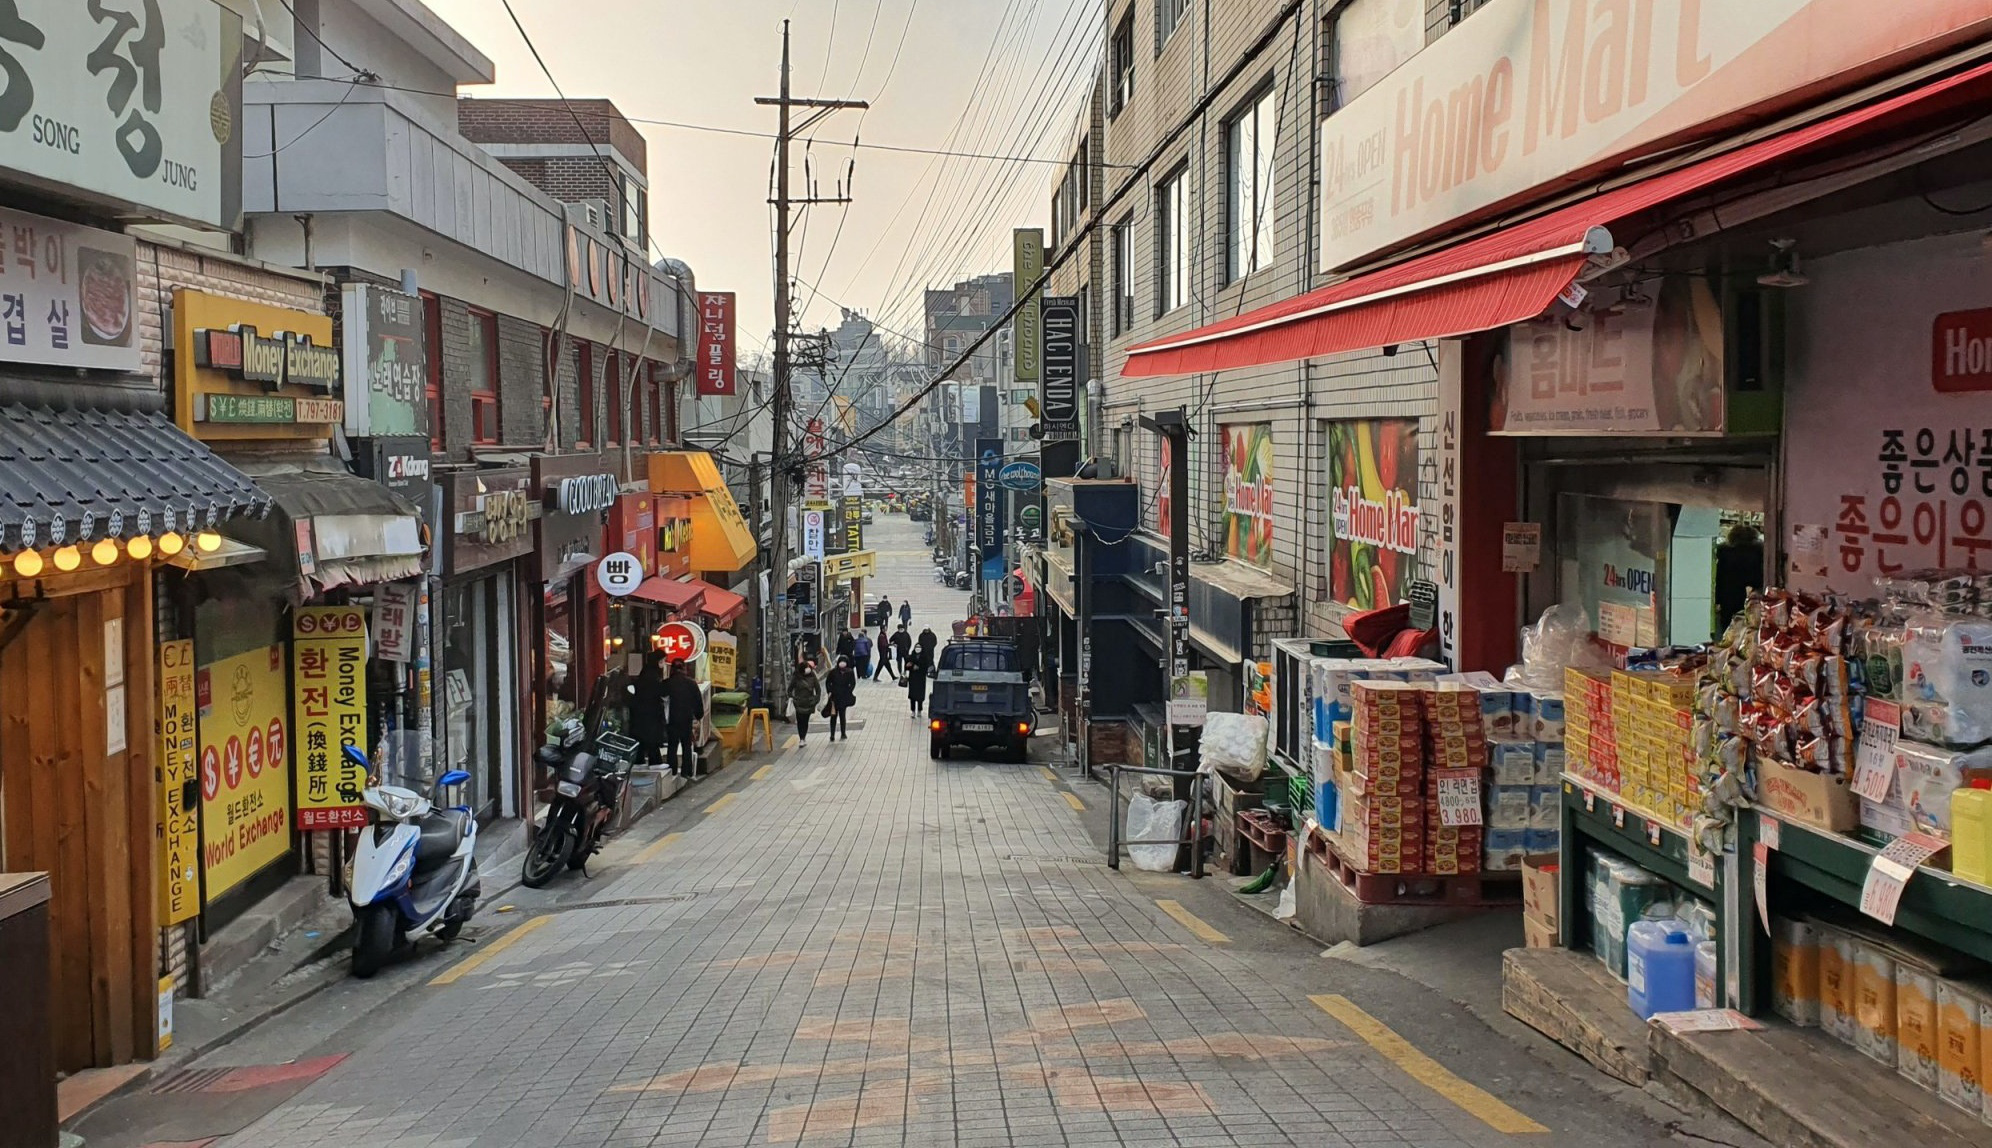 A street full of diverse shops in Itaewo, Saeoul. Photo: Le Dung / Tuoi Tre